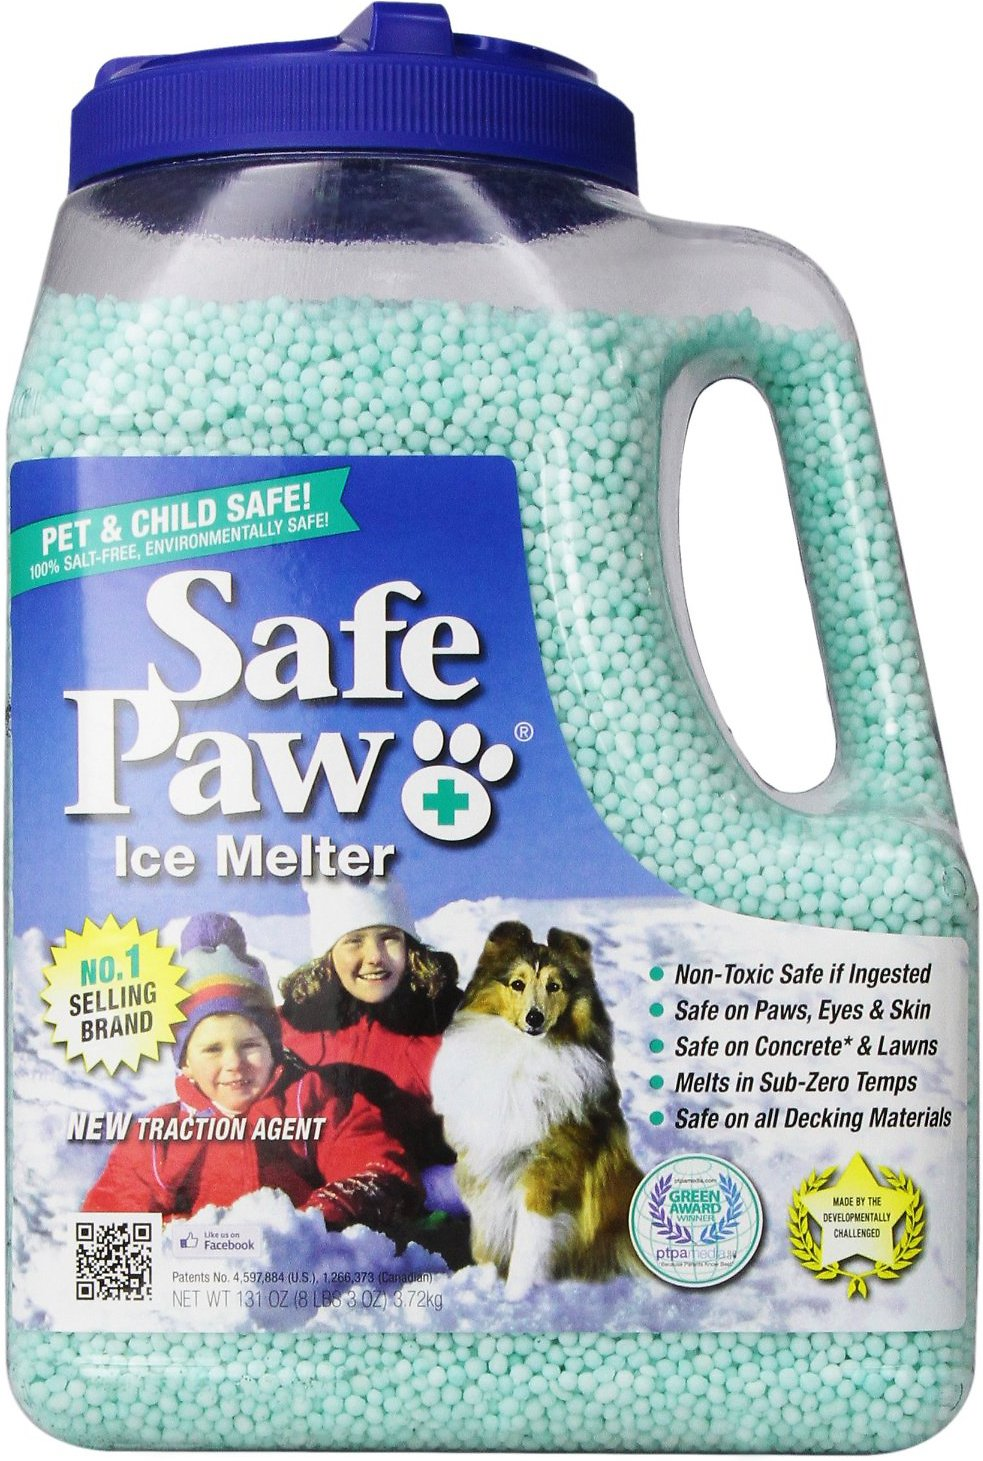 Safe Paw Ice Melter for Dogs & Cats Image